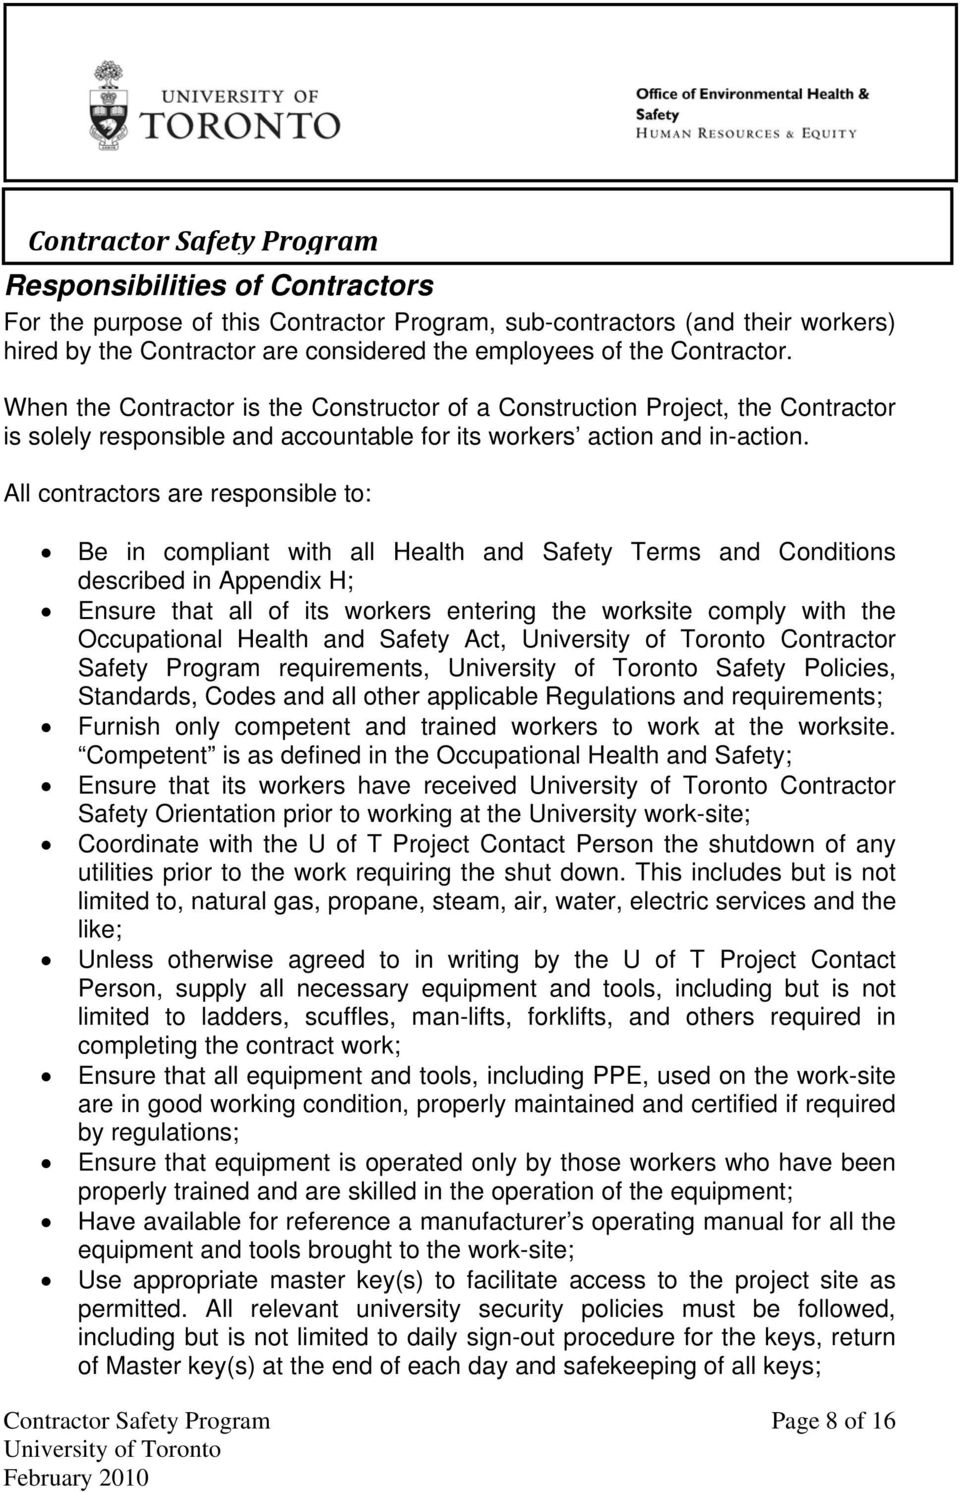 All contractors are responsible to: Be in compliant with all Health and Safety Terms and Conditions described in Appendix H; Ensure that all of its workers entering the worksite comply with the